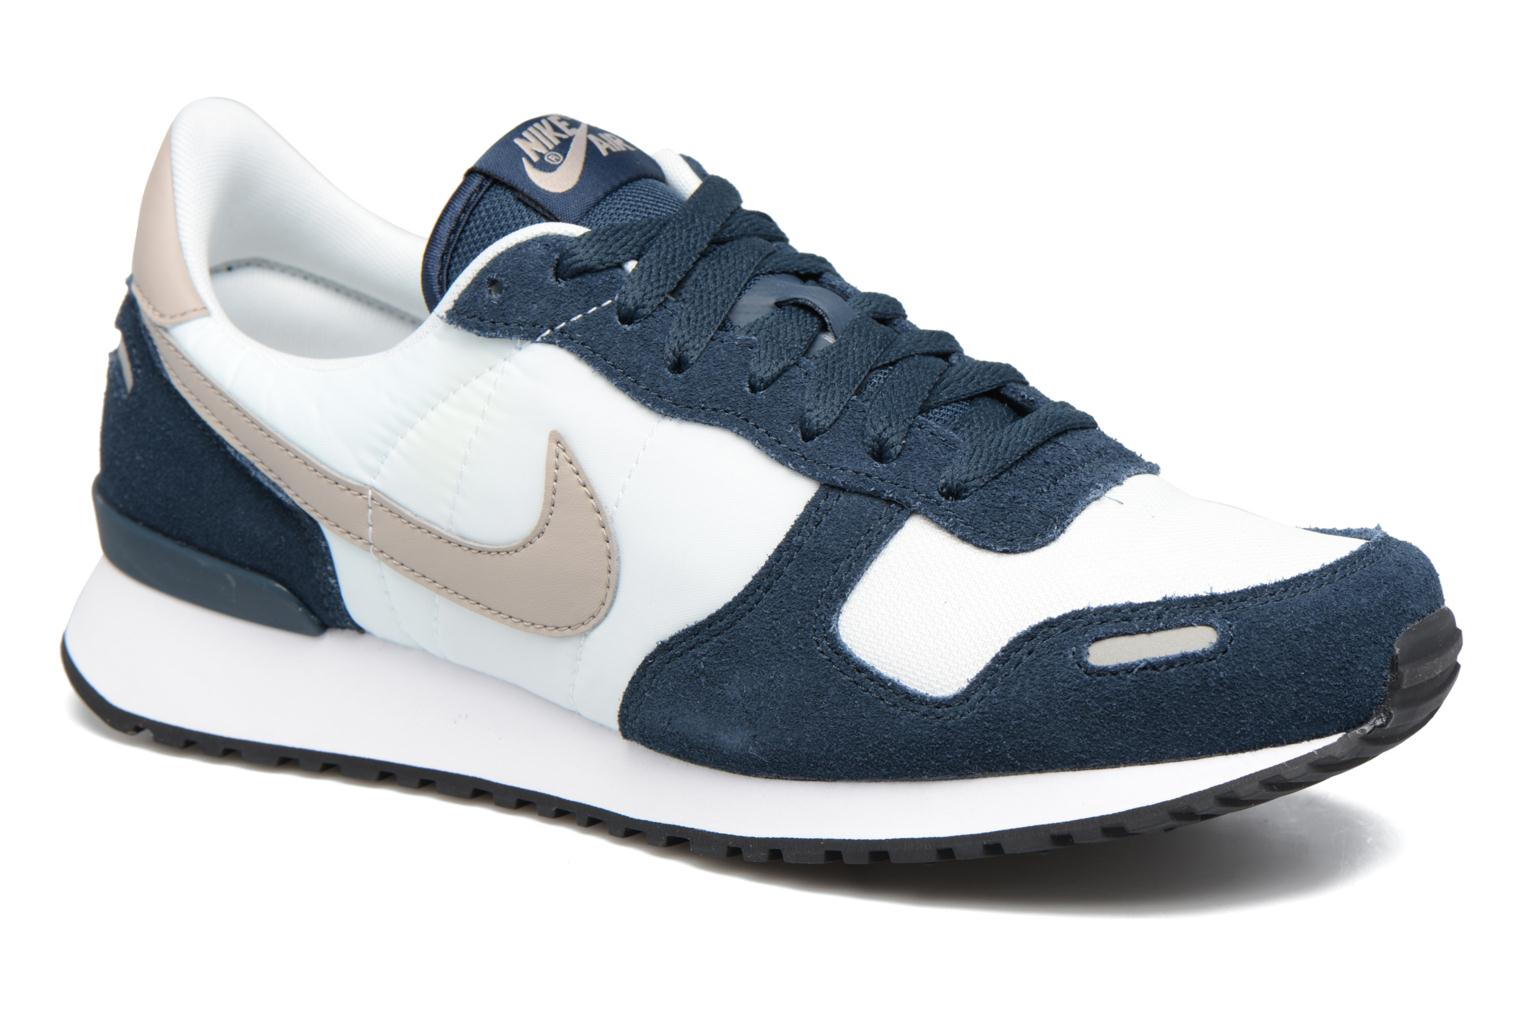 Nike Air Vrtx Armory Navy Cobblestone-Summit White